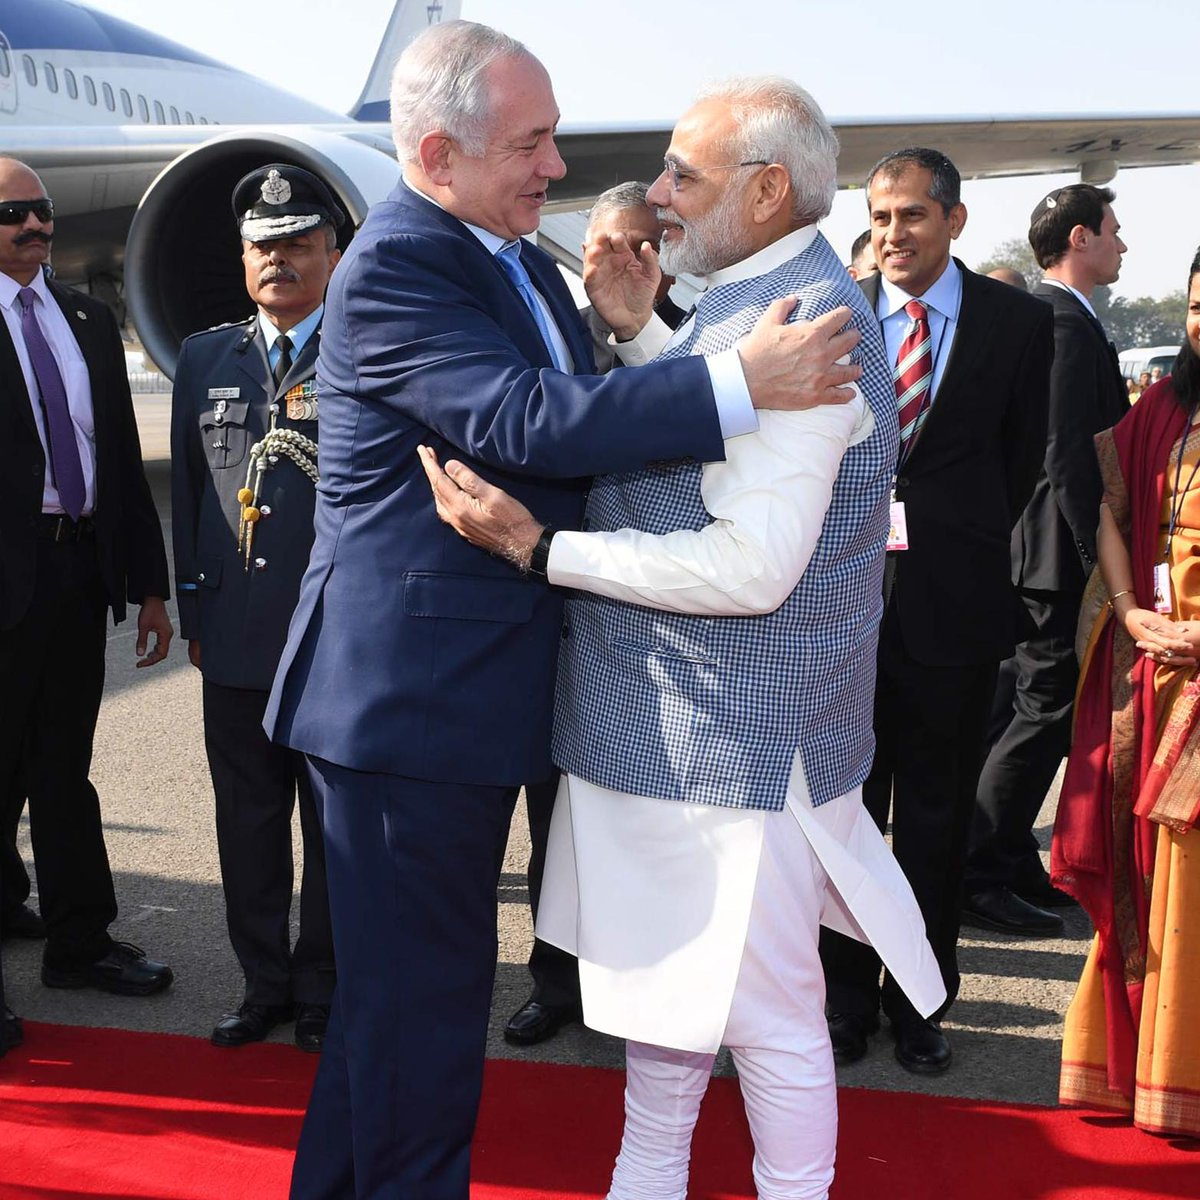 Thank you to my dear friend, Prime Minister @narendramodi, for the warm hospitality in India. The honor you have shown me and the people of Israel will always be remembered. Together we are bringing the relationship between our people and our countries to new heights. 🇮🇱🇮🇳